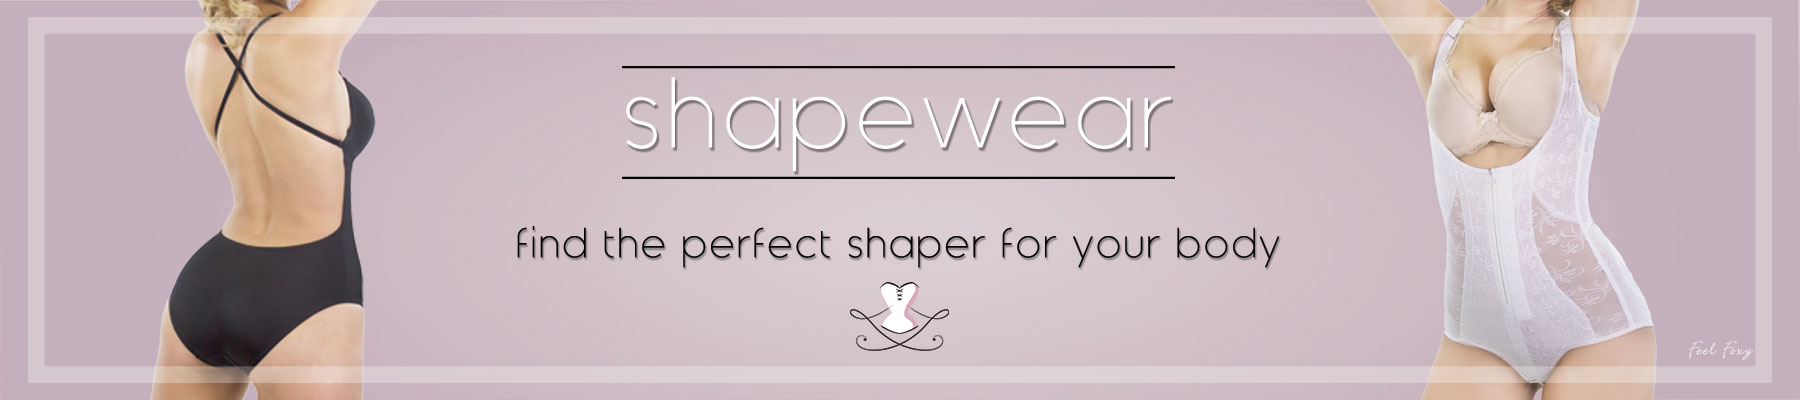 shapwear-purple-banner.jpg